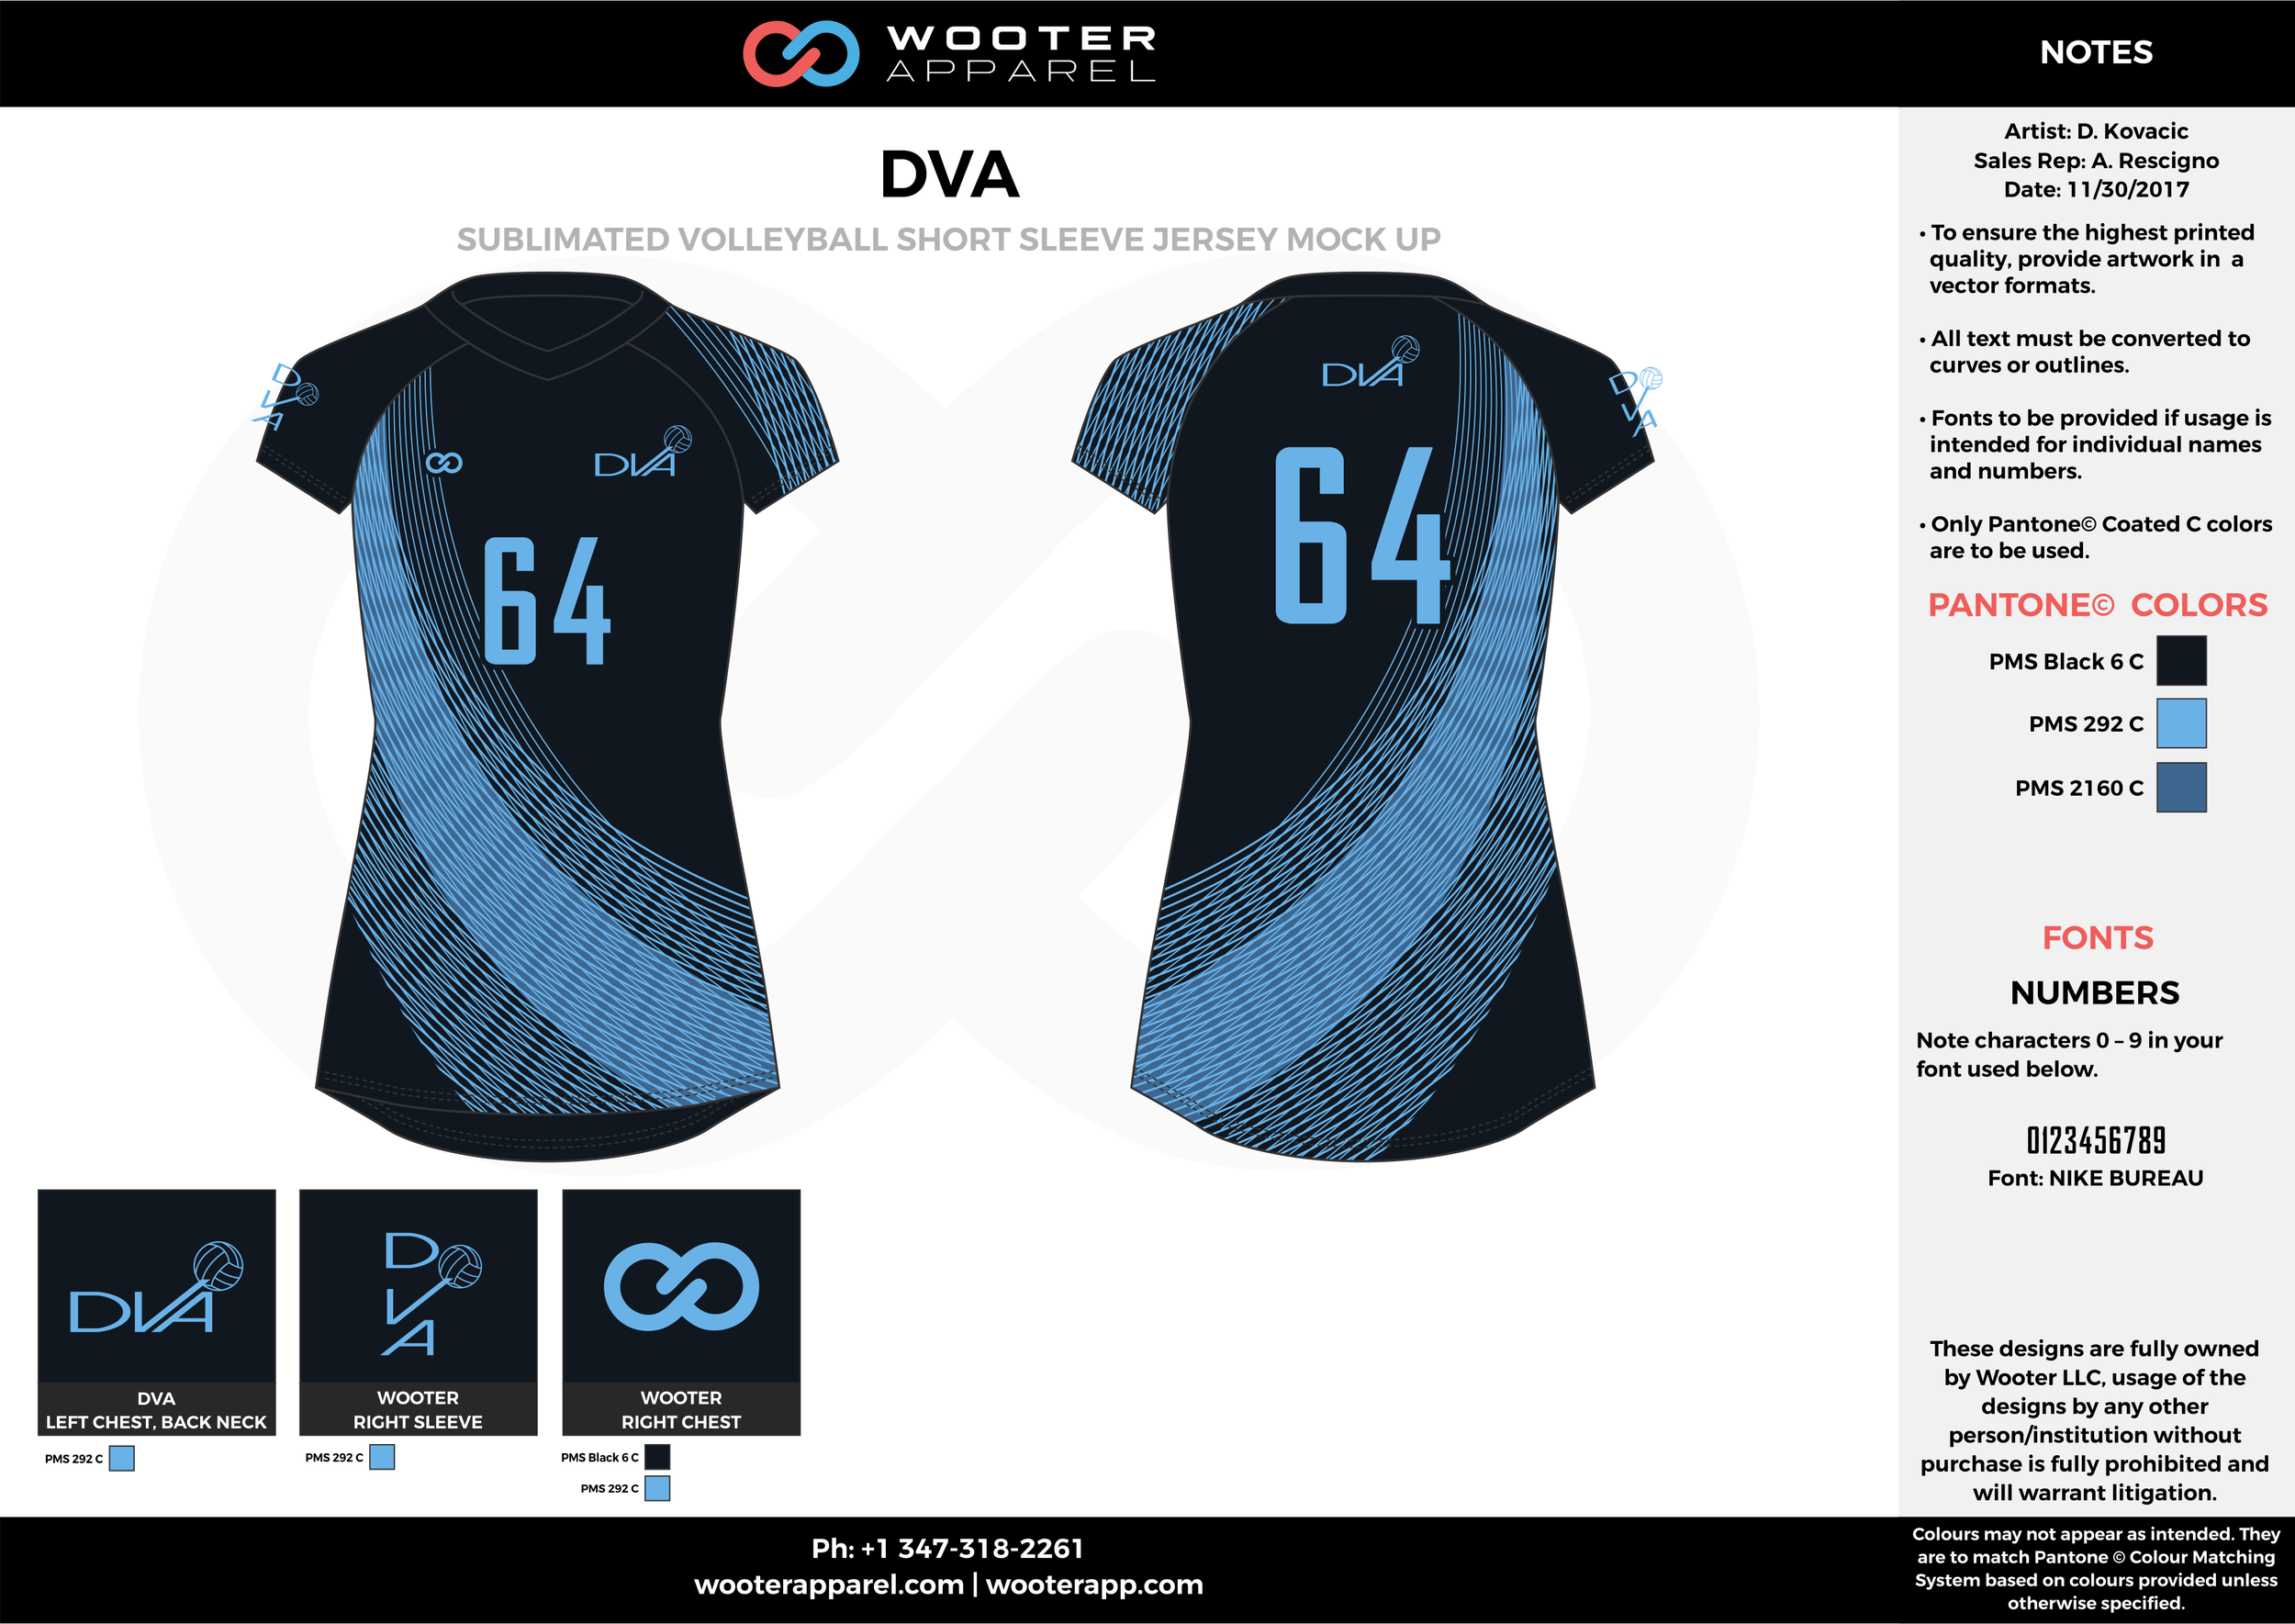 DVA sky dark blue black Volleyball Uniforms, Jerseys, Shorts